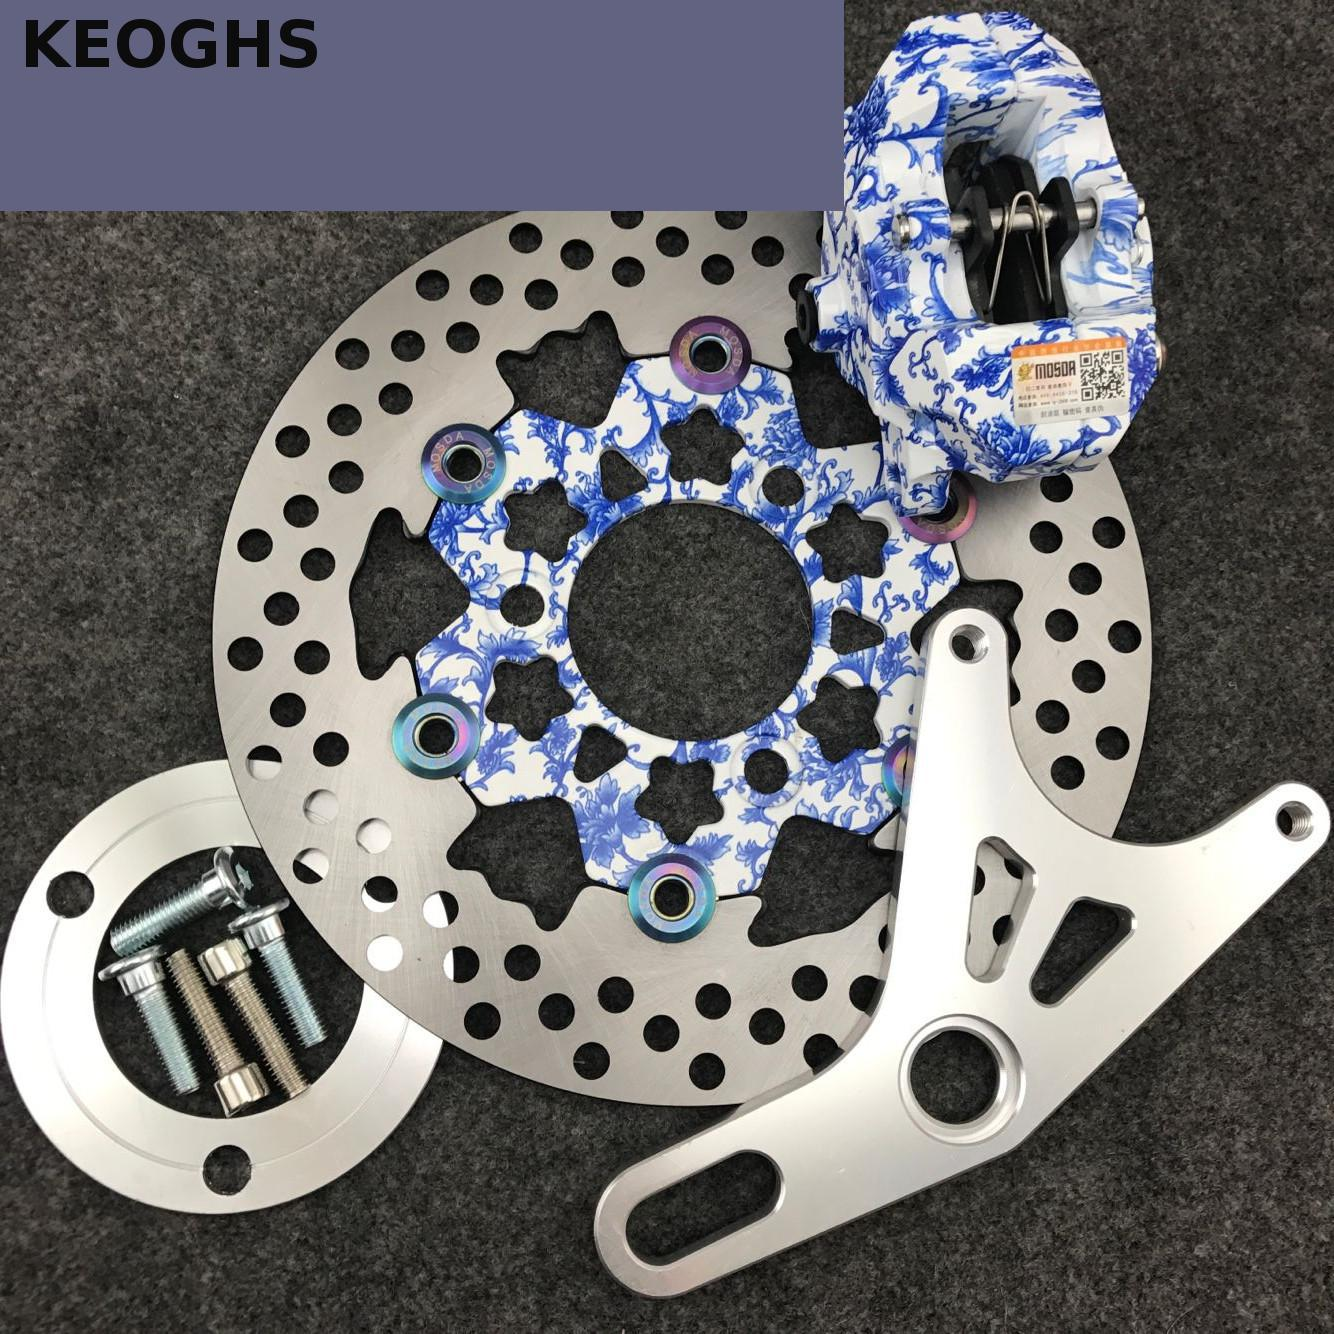 Keoghs Motorcycle Rear Brake System White And Blue Chinese Style 220mm Brake Disc/2 Piston Caliper For Yamaha Scooter keoghs motorcycle hydraulic brake system 4 piston 100mm hf2 brake caliper 260mm brake disc for yamaha scooter cygnus x modify